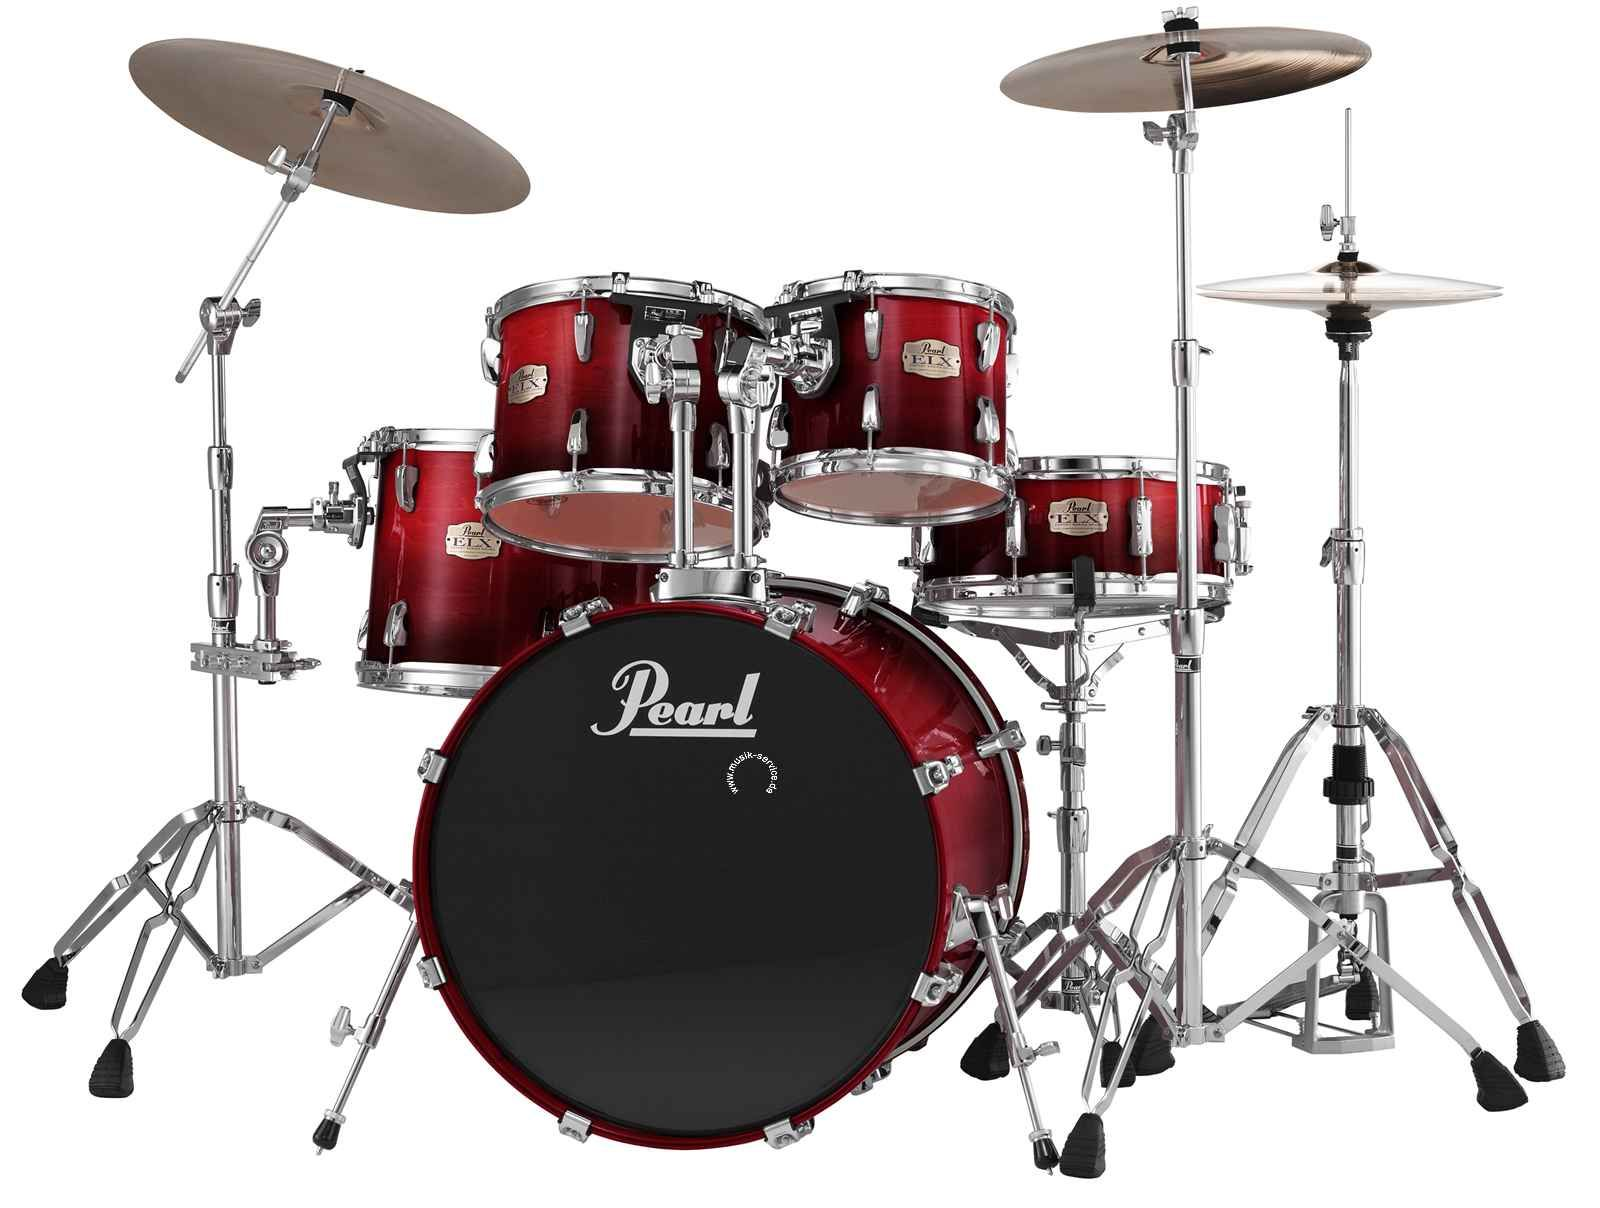 Red Pearl Drum Set   Love it    Drum on   Pinterest   Pearl drums     Red Pearl Drum Set   Love it